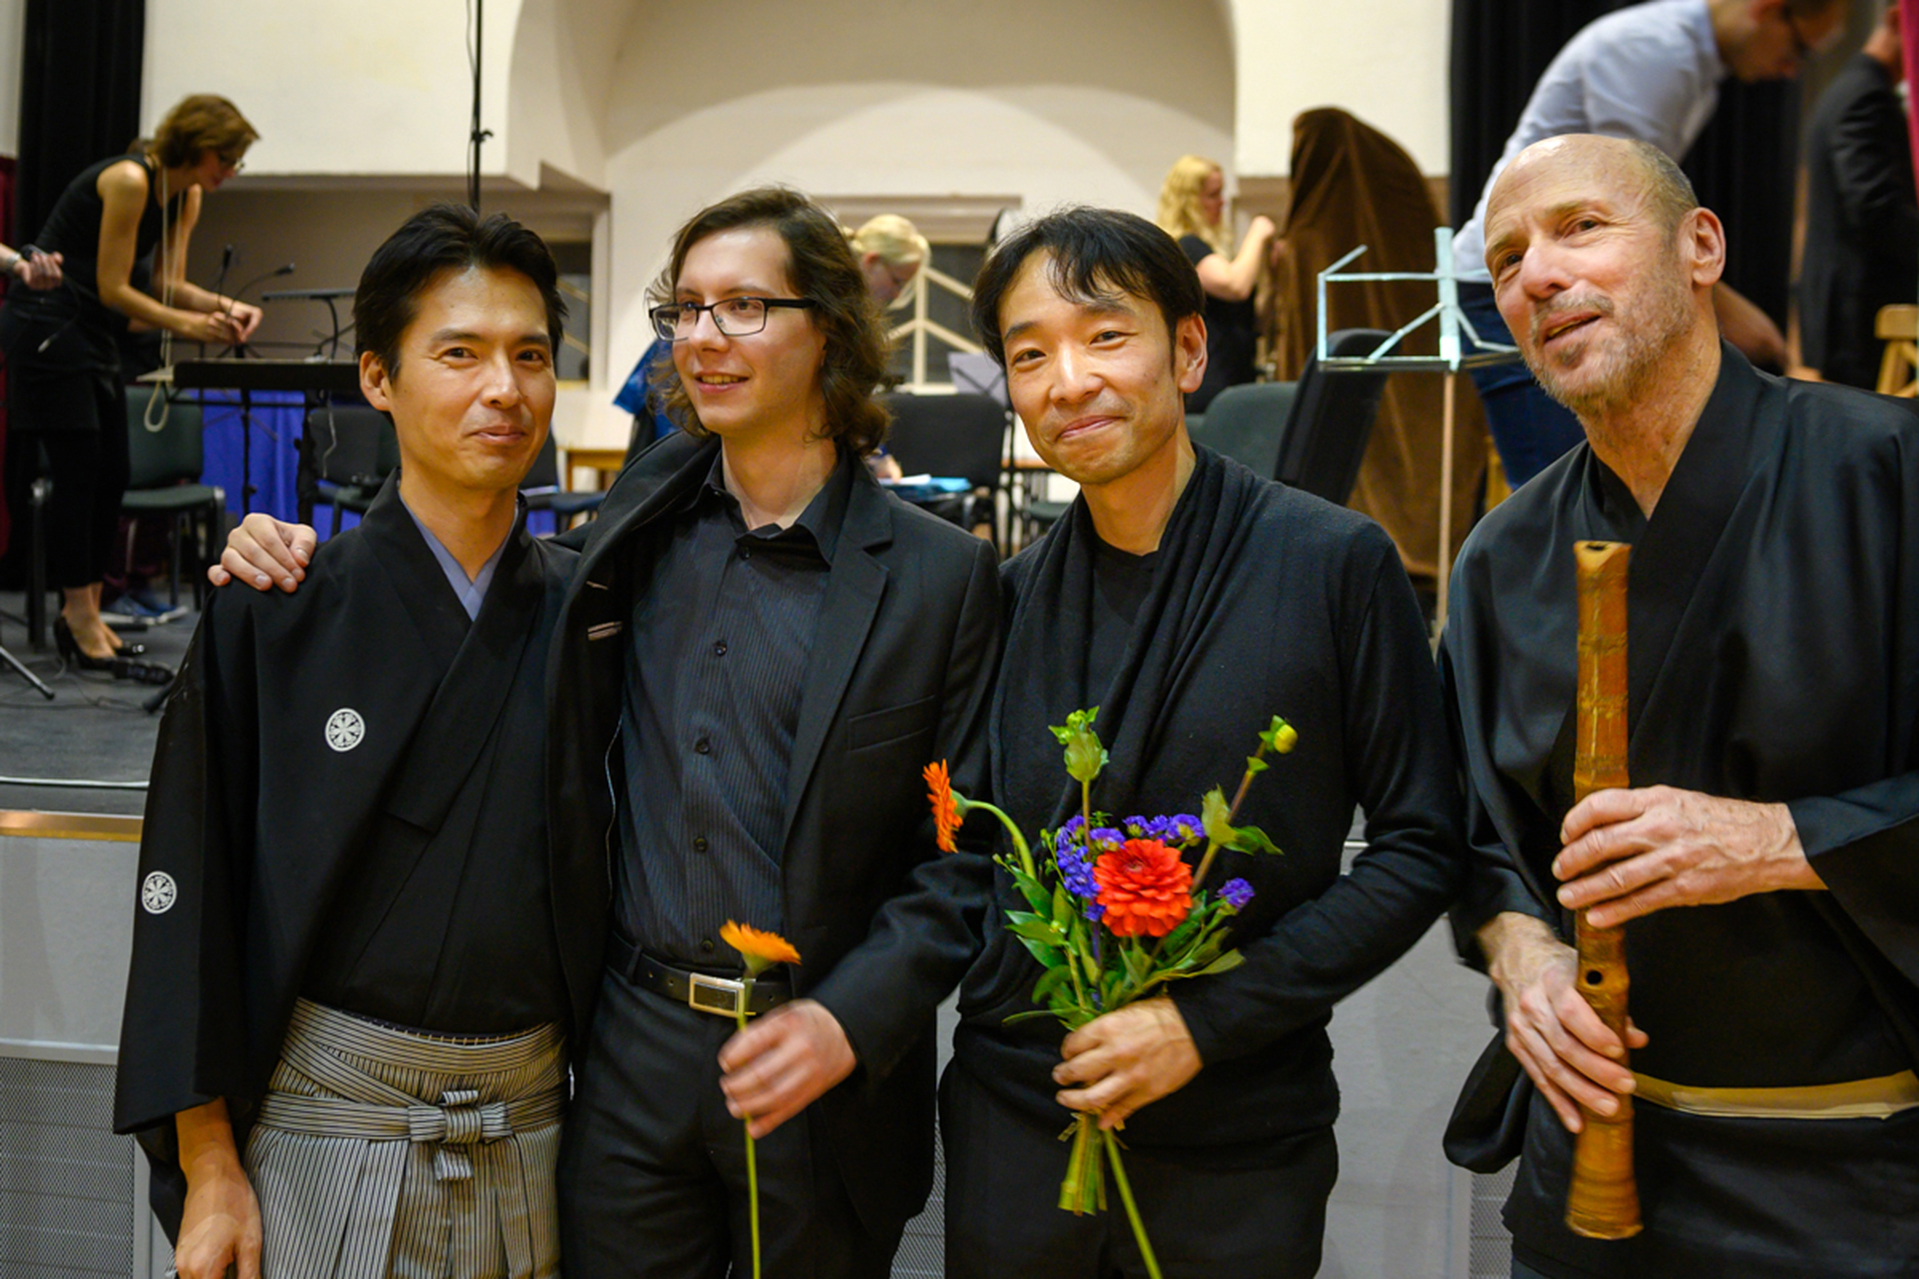 Shown just after the close of the 2019 International Shakuhachi Festival Prague are, from left, shakuhachi player Akihito Obama, festival director Marek Kimei Matvija, Bates composer Hiroya Miura, and shakuhachi player John Kaizan Neptune. (Karel Suster/Courtesy of the BERG Orchestra)